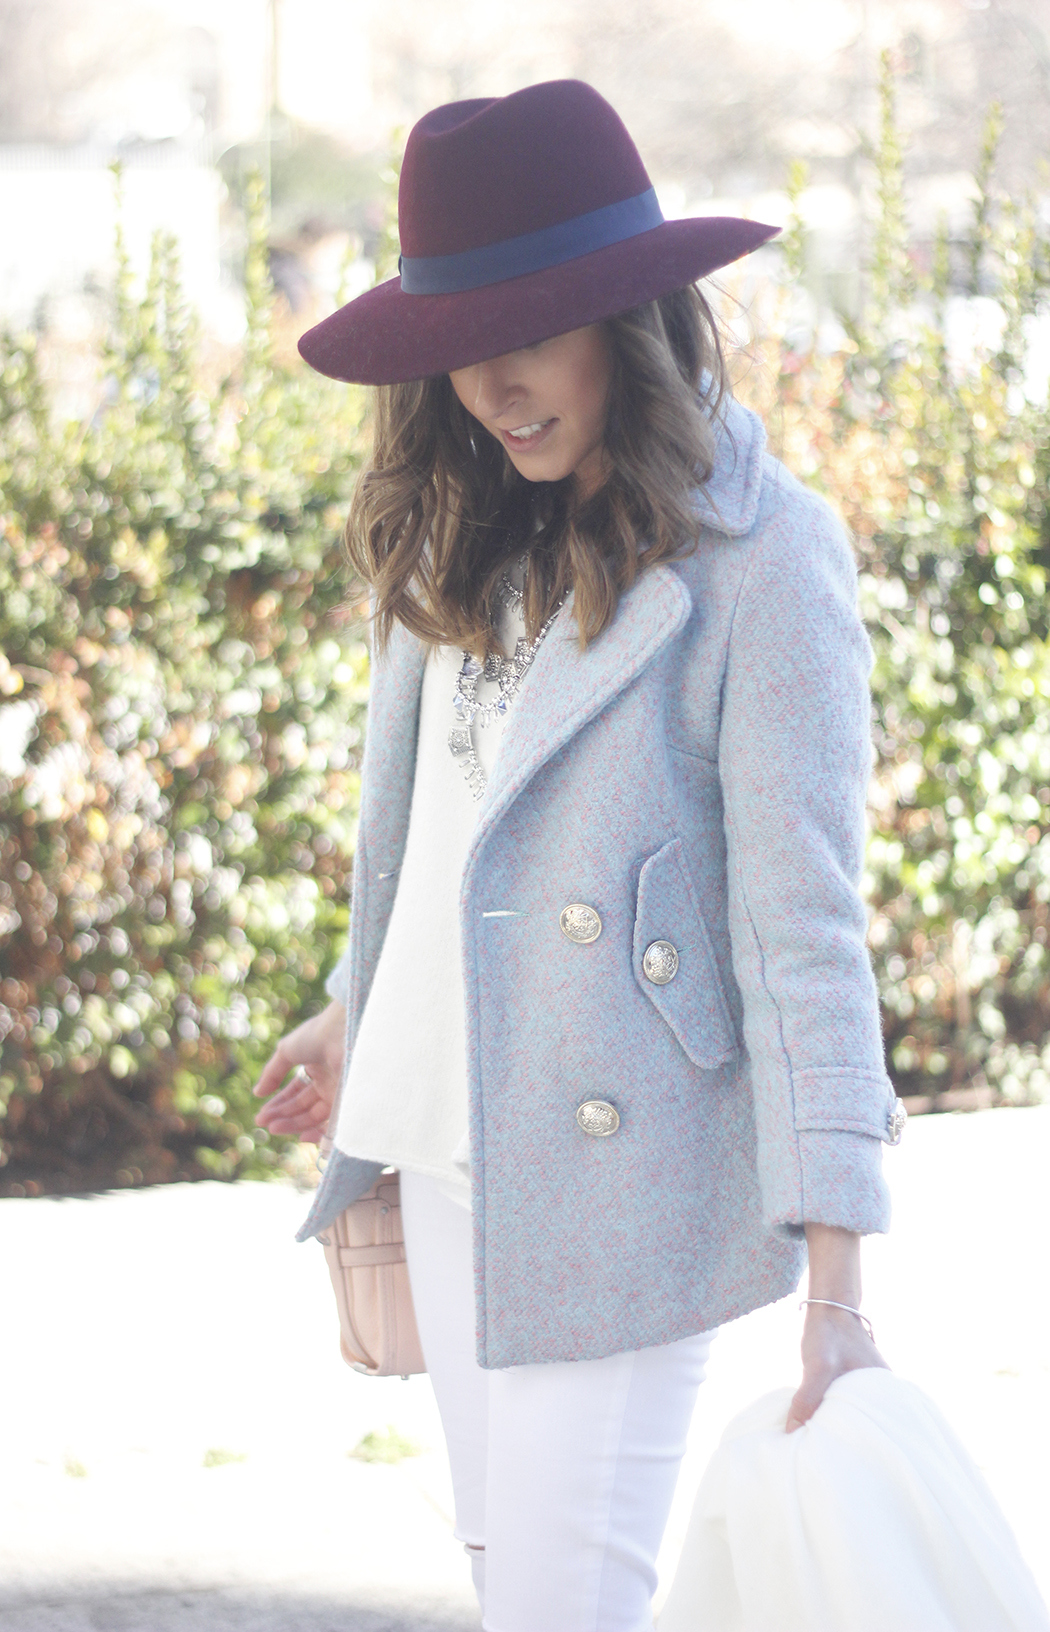 Blue Coat White outfit burgundy hat pink bag coach accessories style11